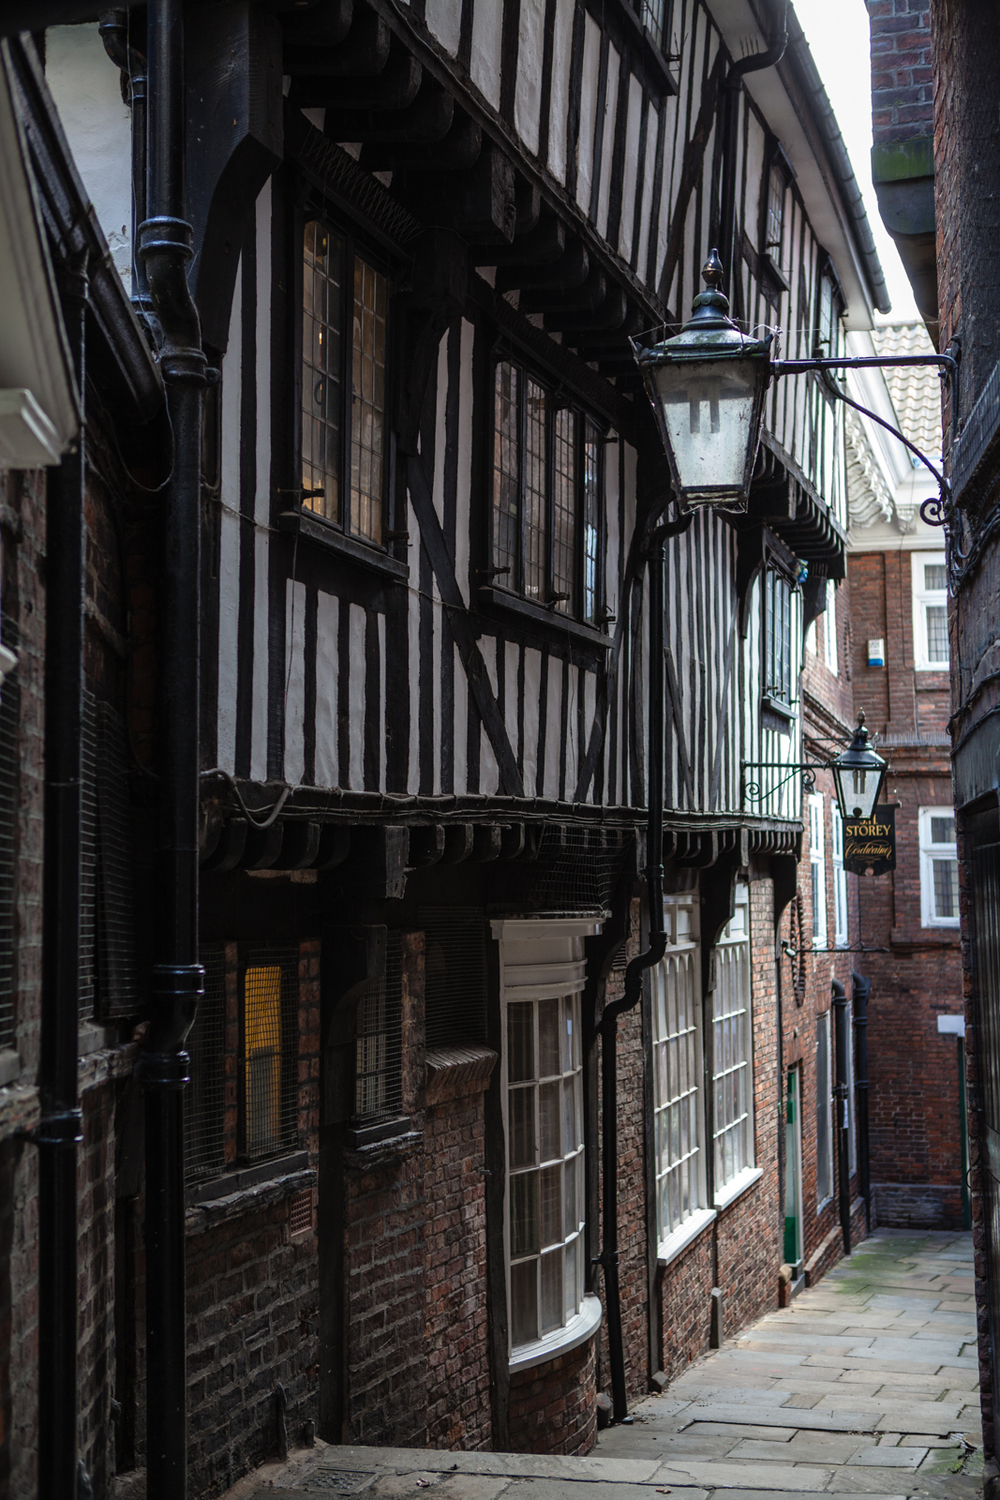 ©Jennifer Bailey 2013 Lady Peckett's Yard, York, England